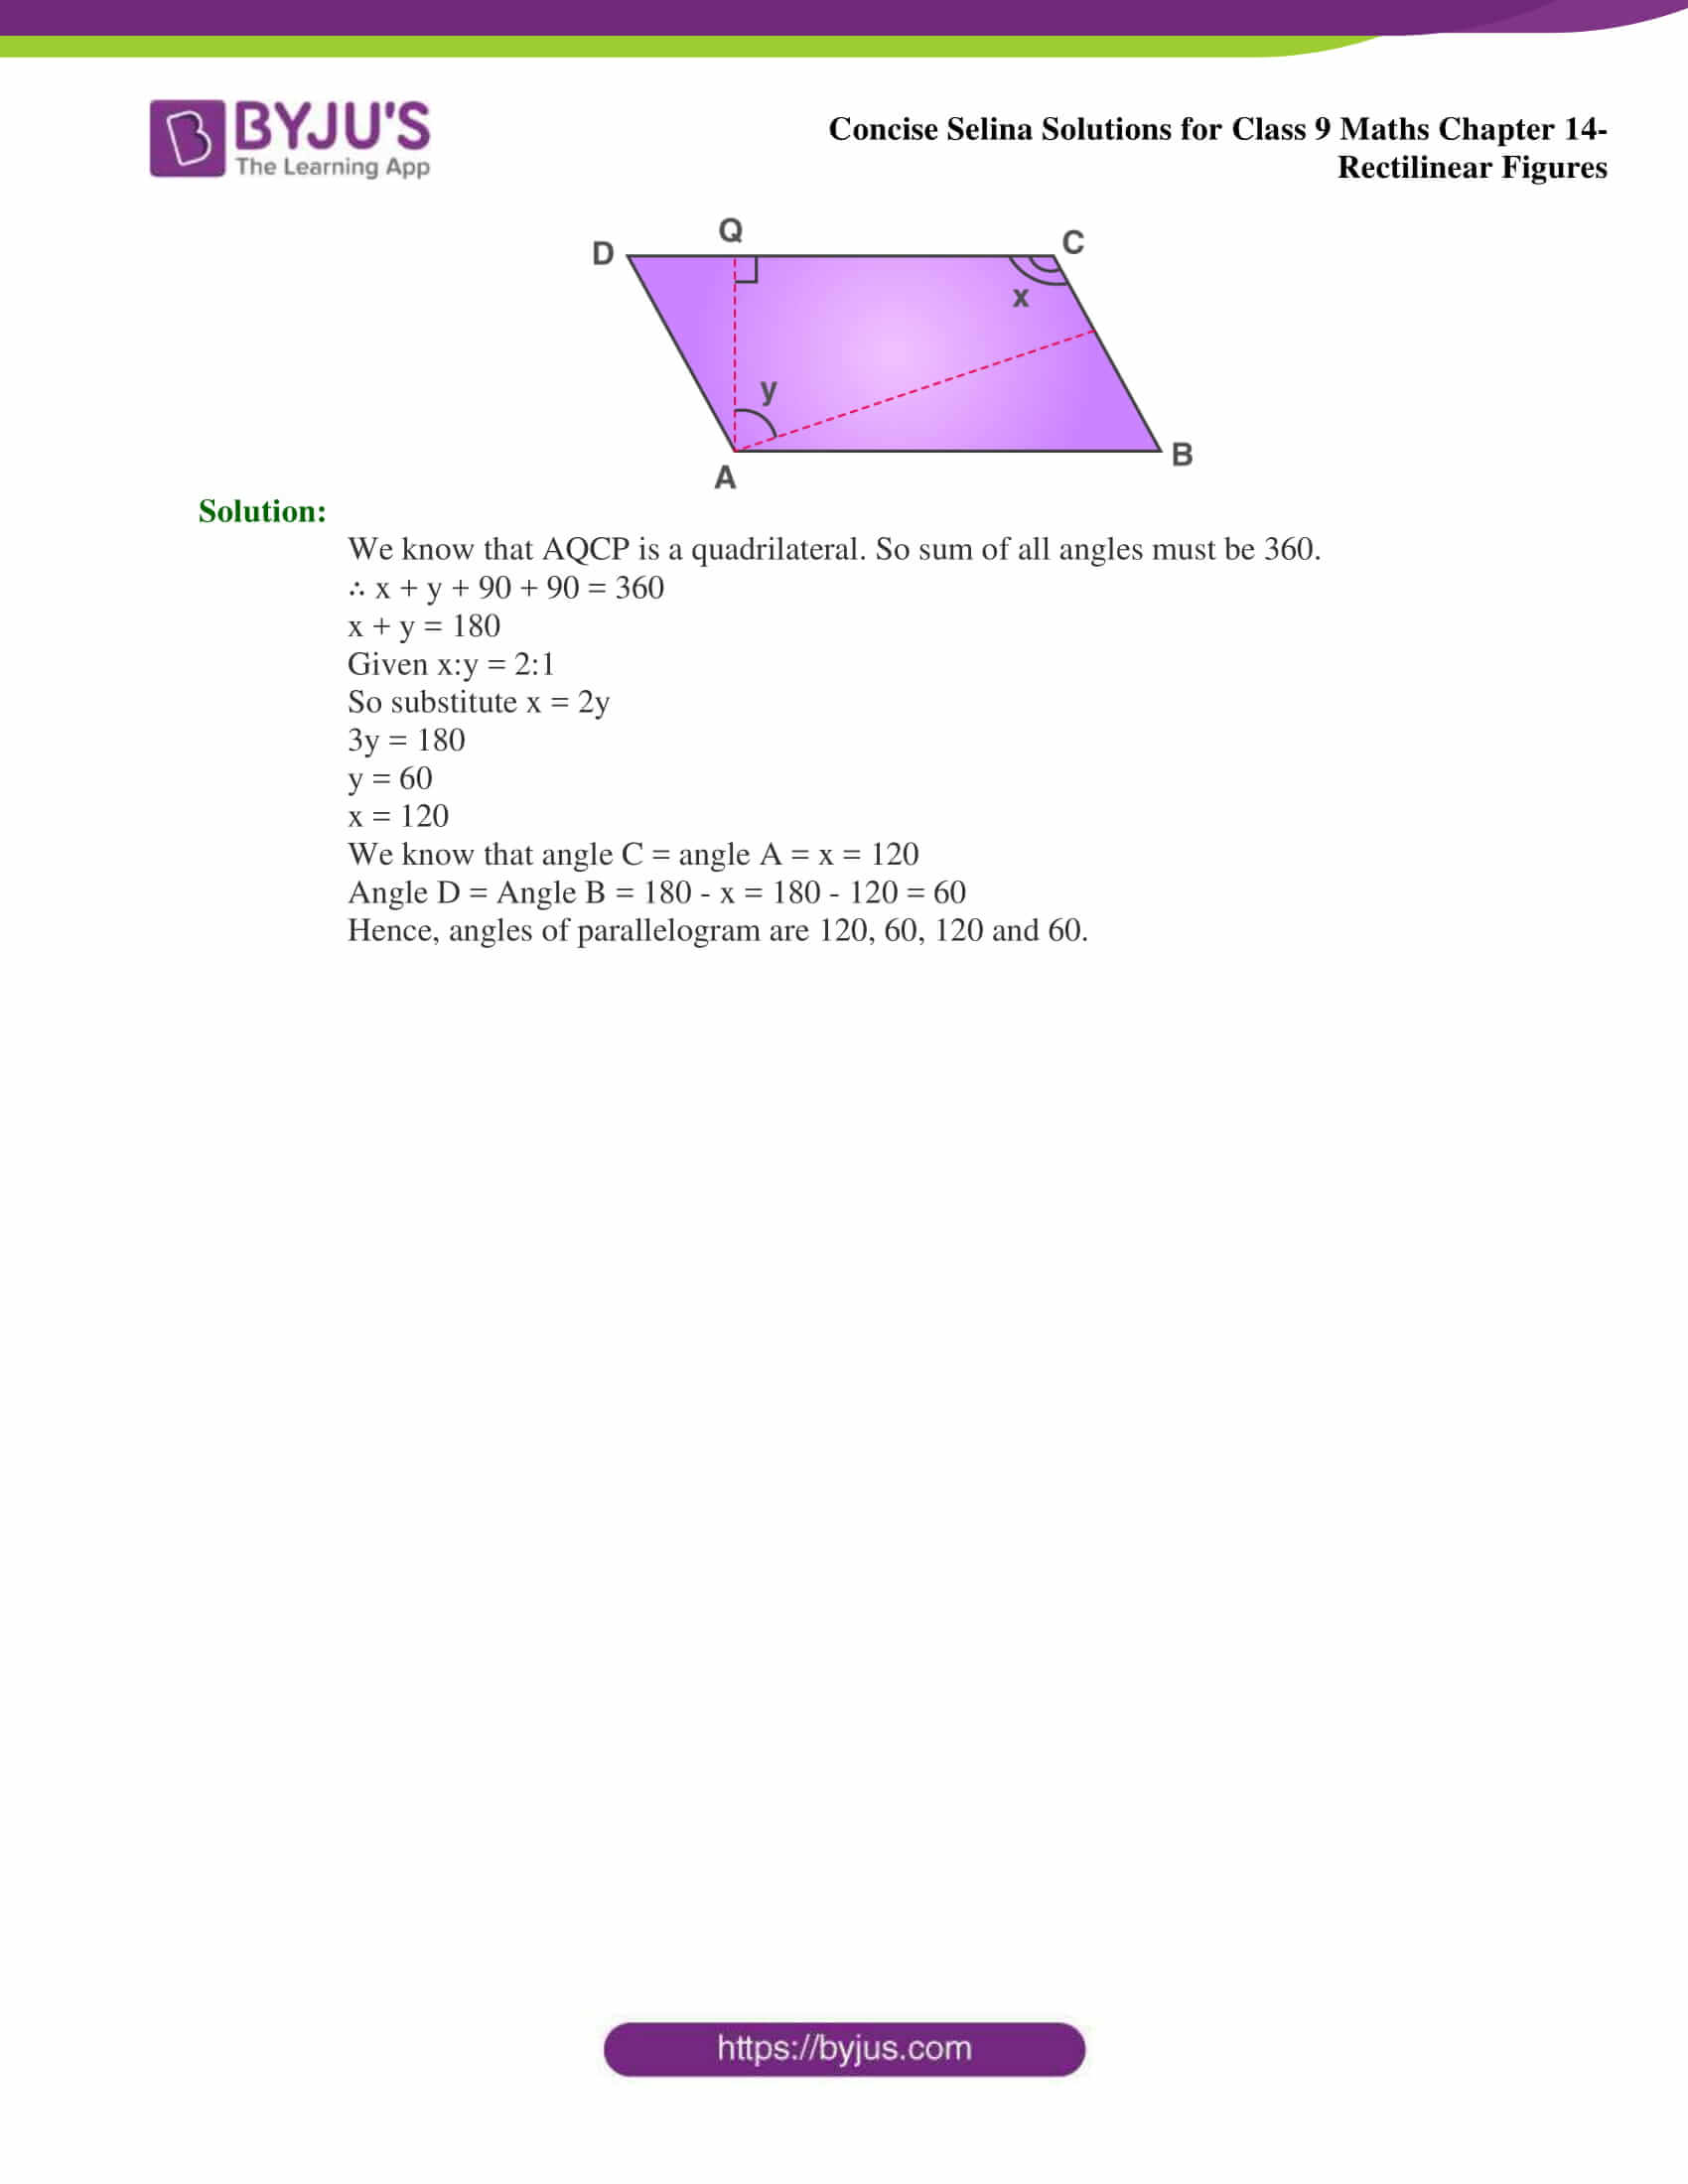 selina Solutions for Class 9 Maths Chapter 14 part 16